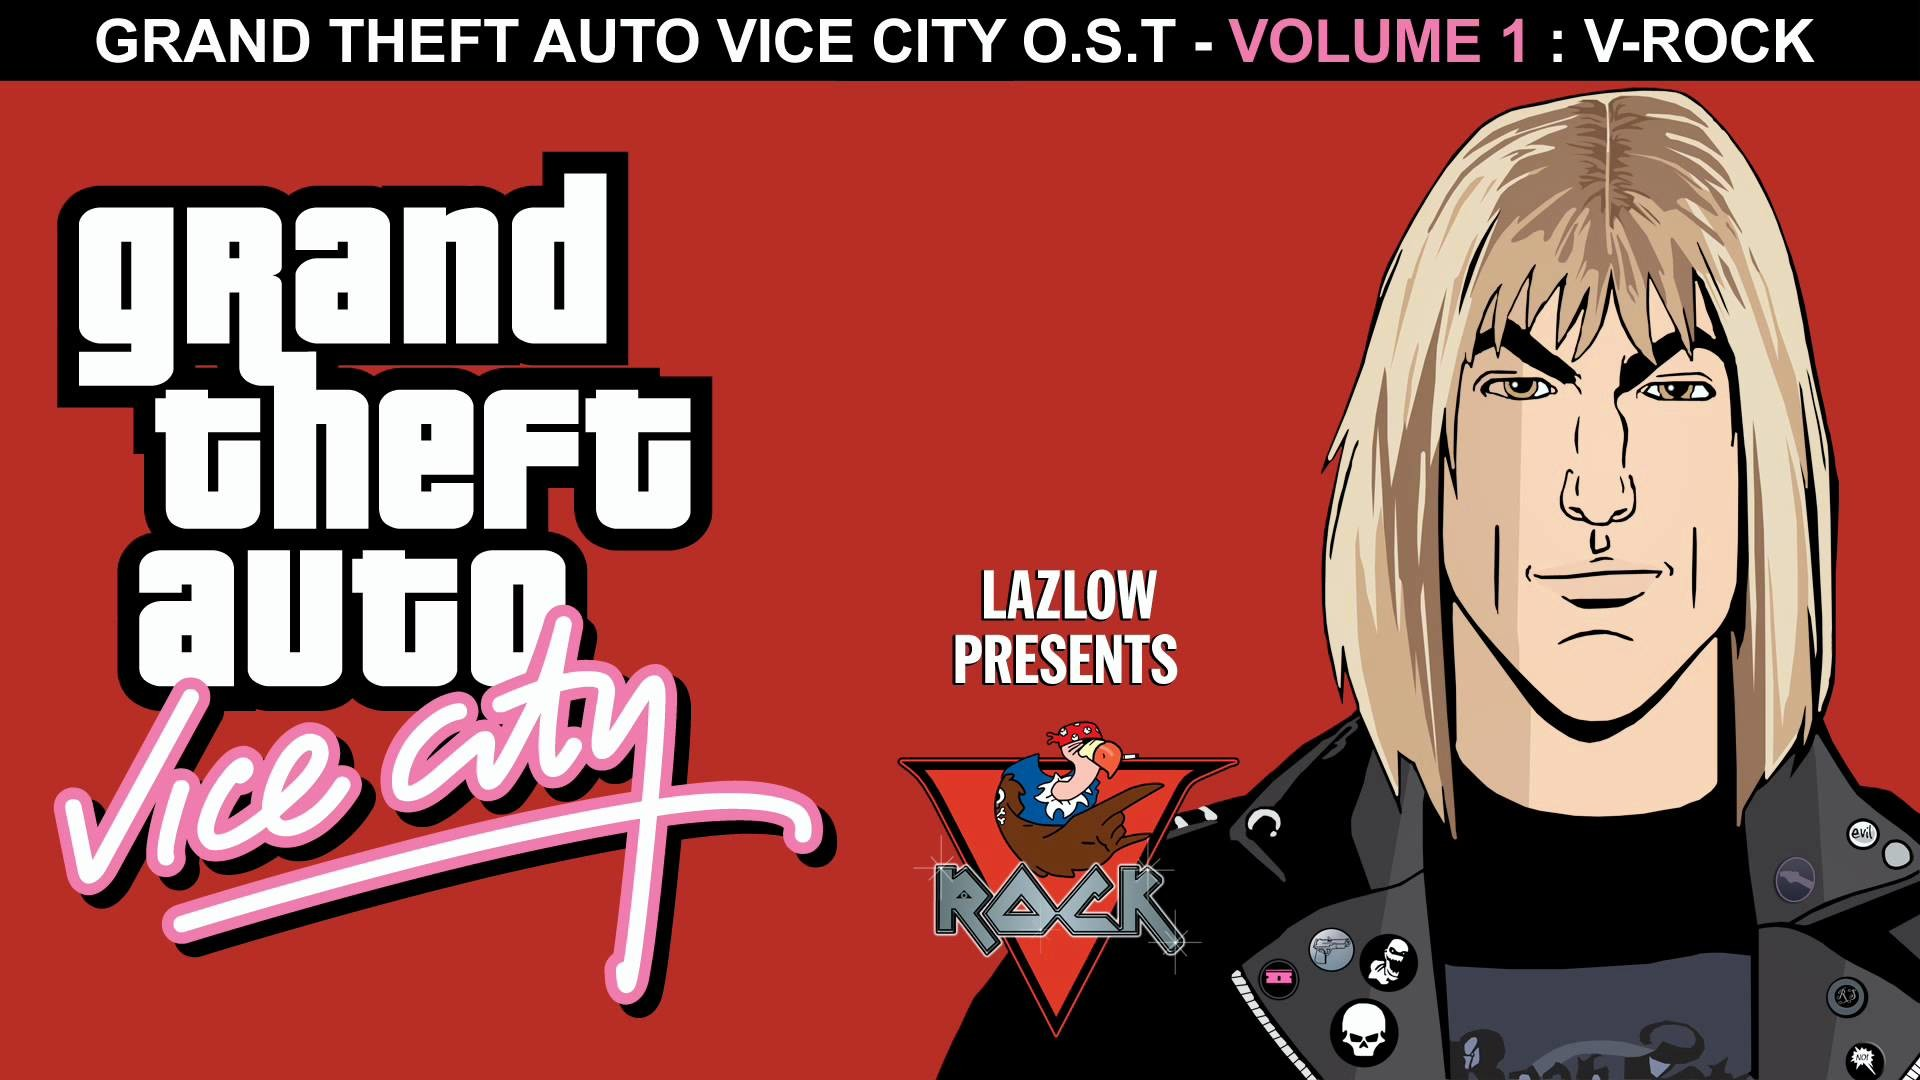 1920x1080 You've Got Another Thing Comin' - Judas Priest - V-Rock - GTA Vice City  Soundtrack [HD]